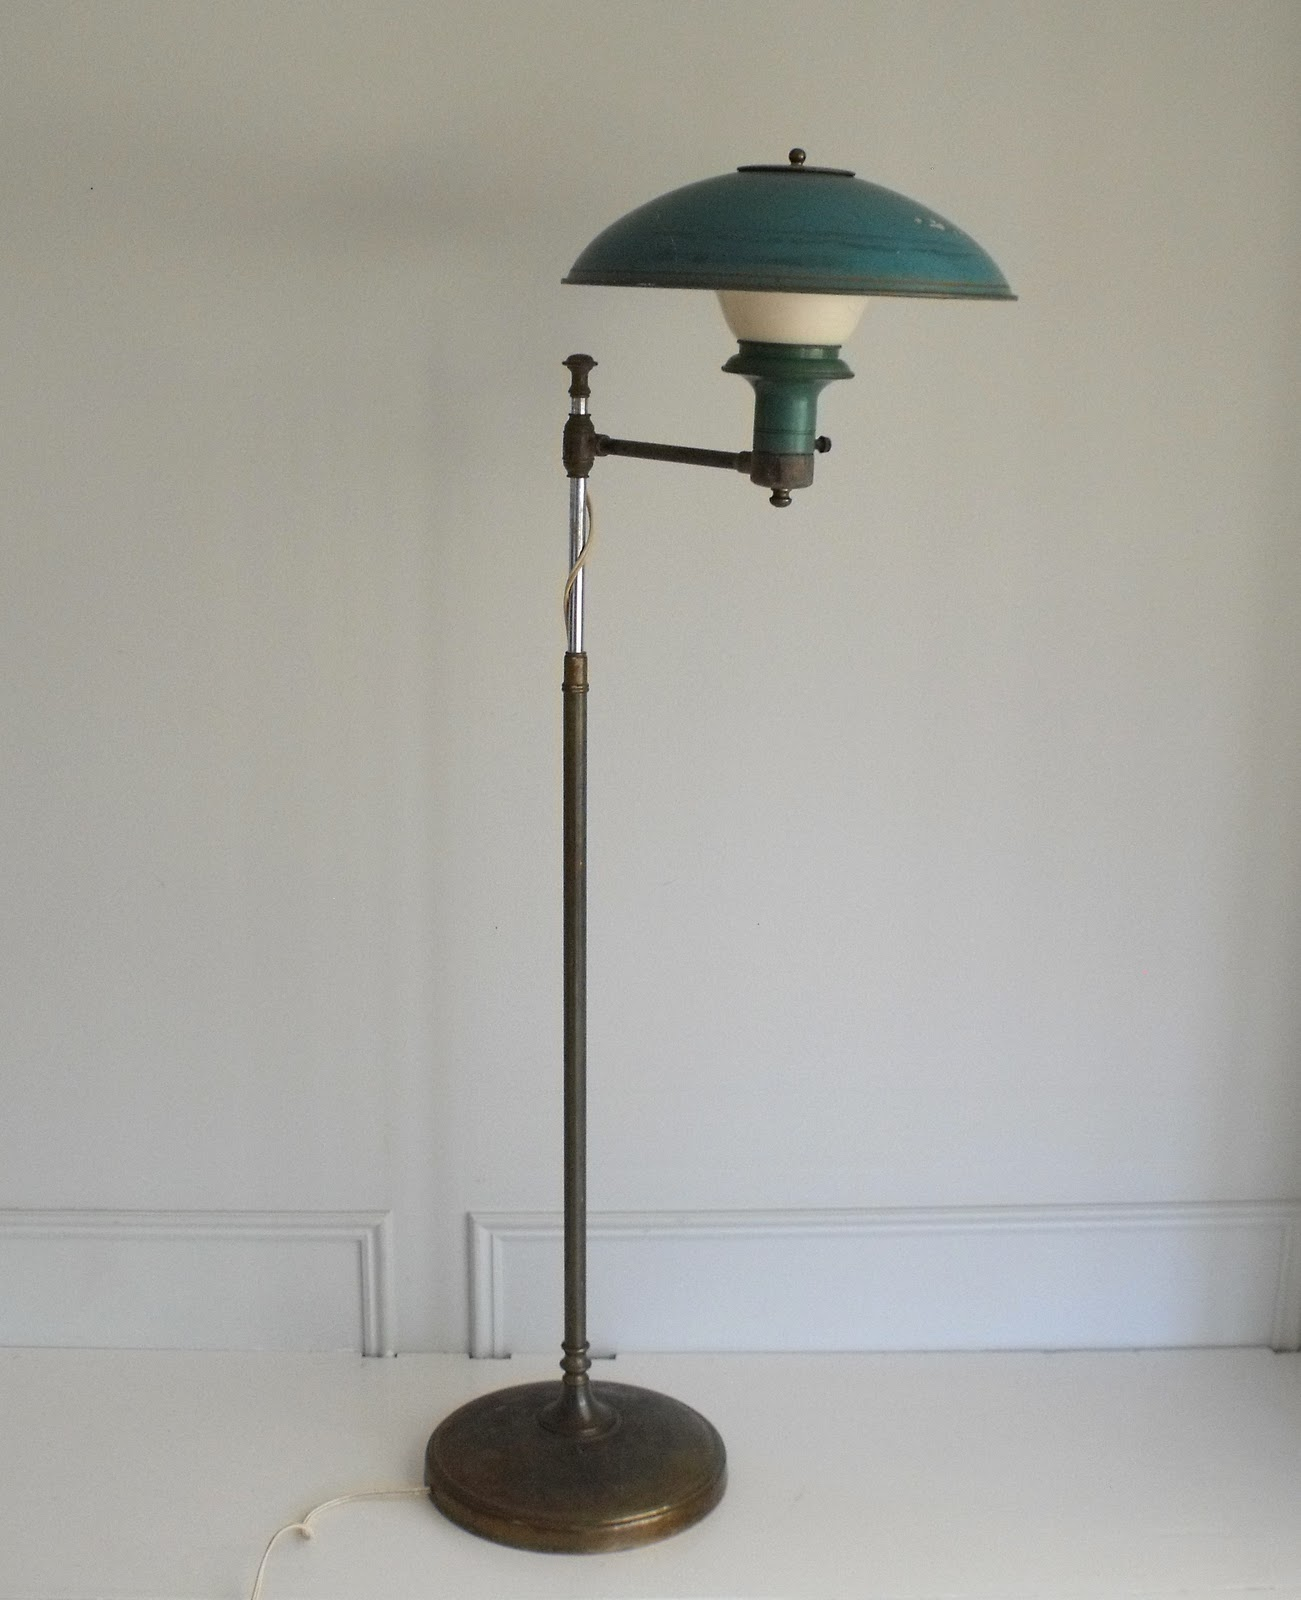 A Turquoise Floor Lamp Enlightening Your Room Dramatically | HomesFeed:classic turquoise floor lamp made of metal on its post and base for  traditional or classic,Lighting